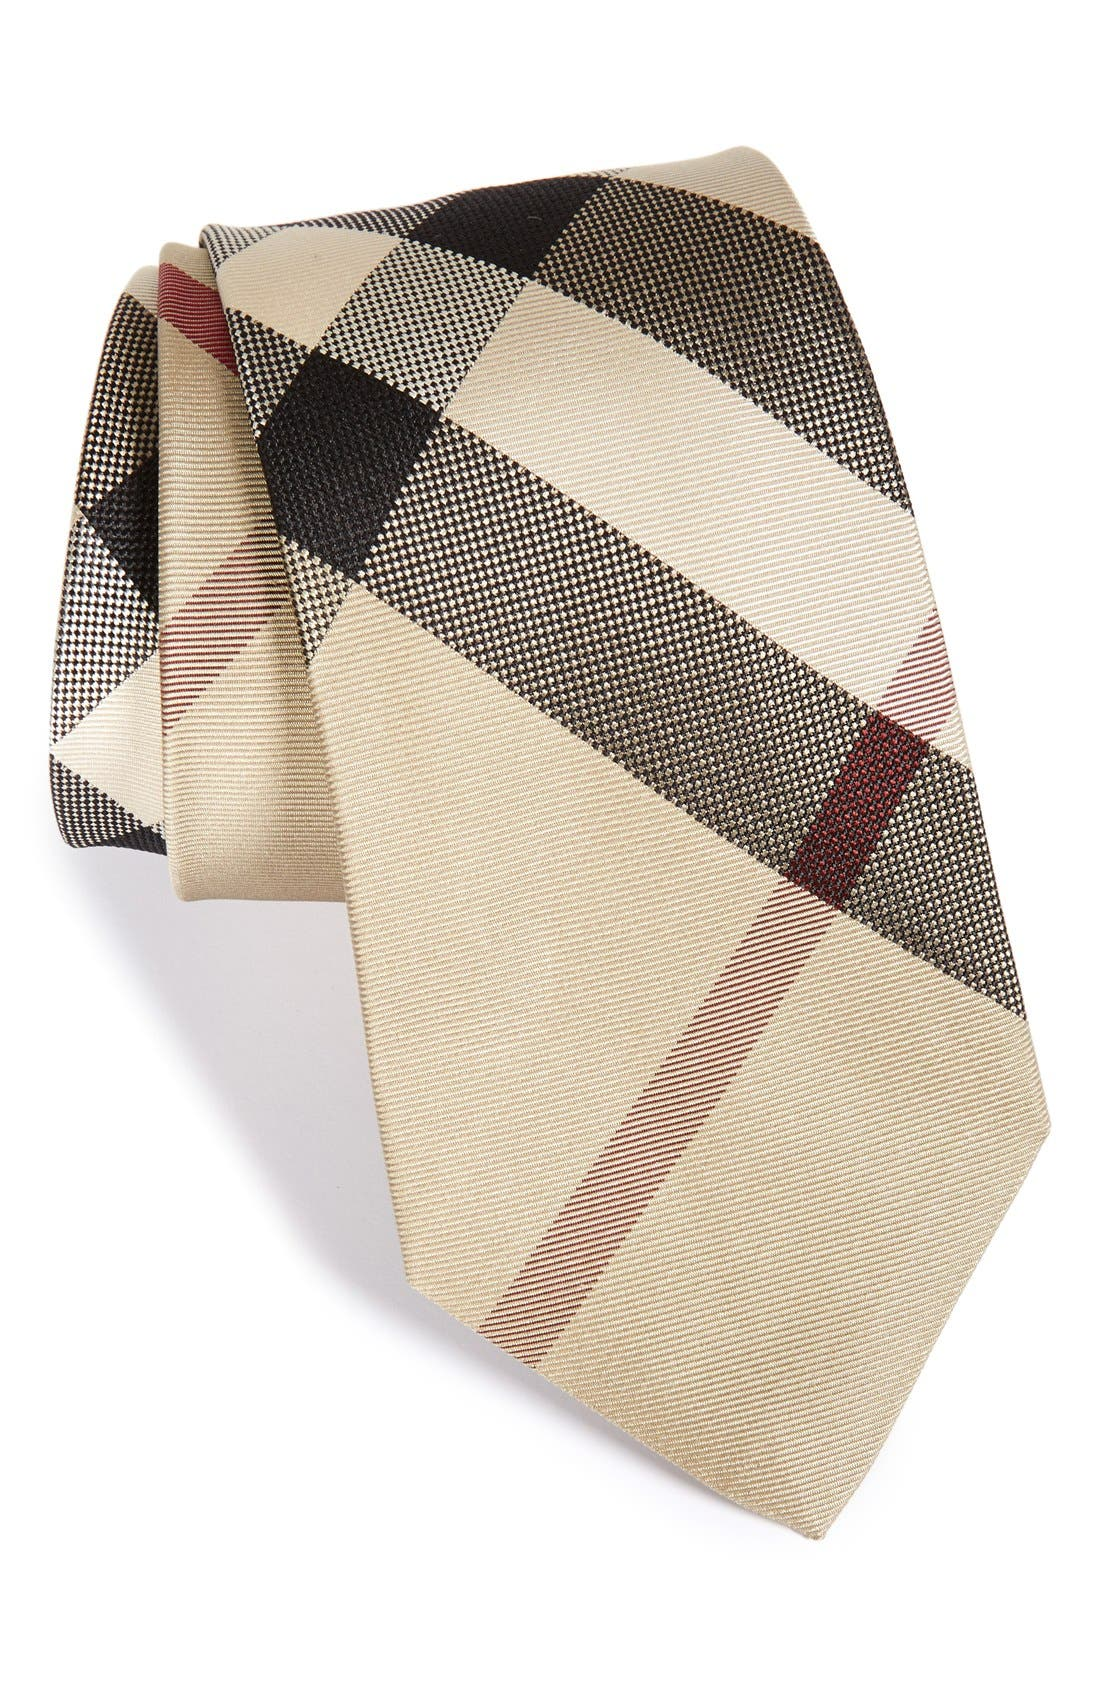 Alternate Image 1 Selected - Burberry 'Manston' Woven Silk Tie